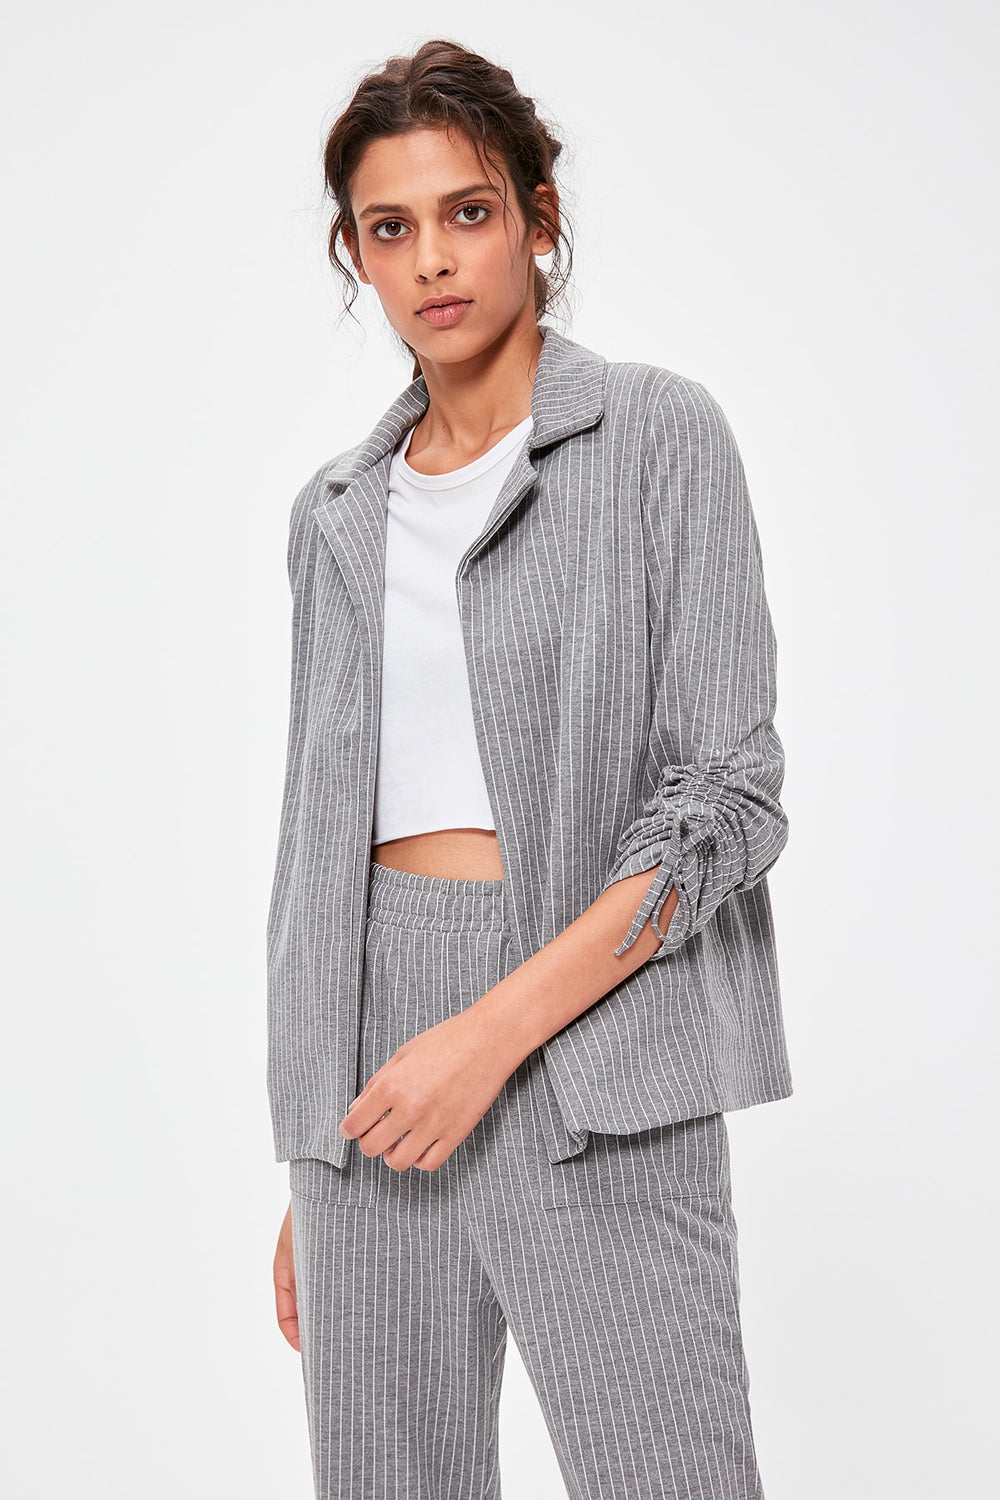 Miss Zut Miss Zut Gray Striped Knitted Jacket TWOAW20CE0095 Miss Zut &CO